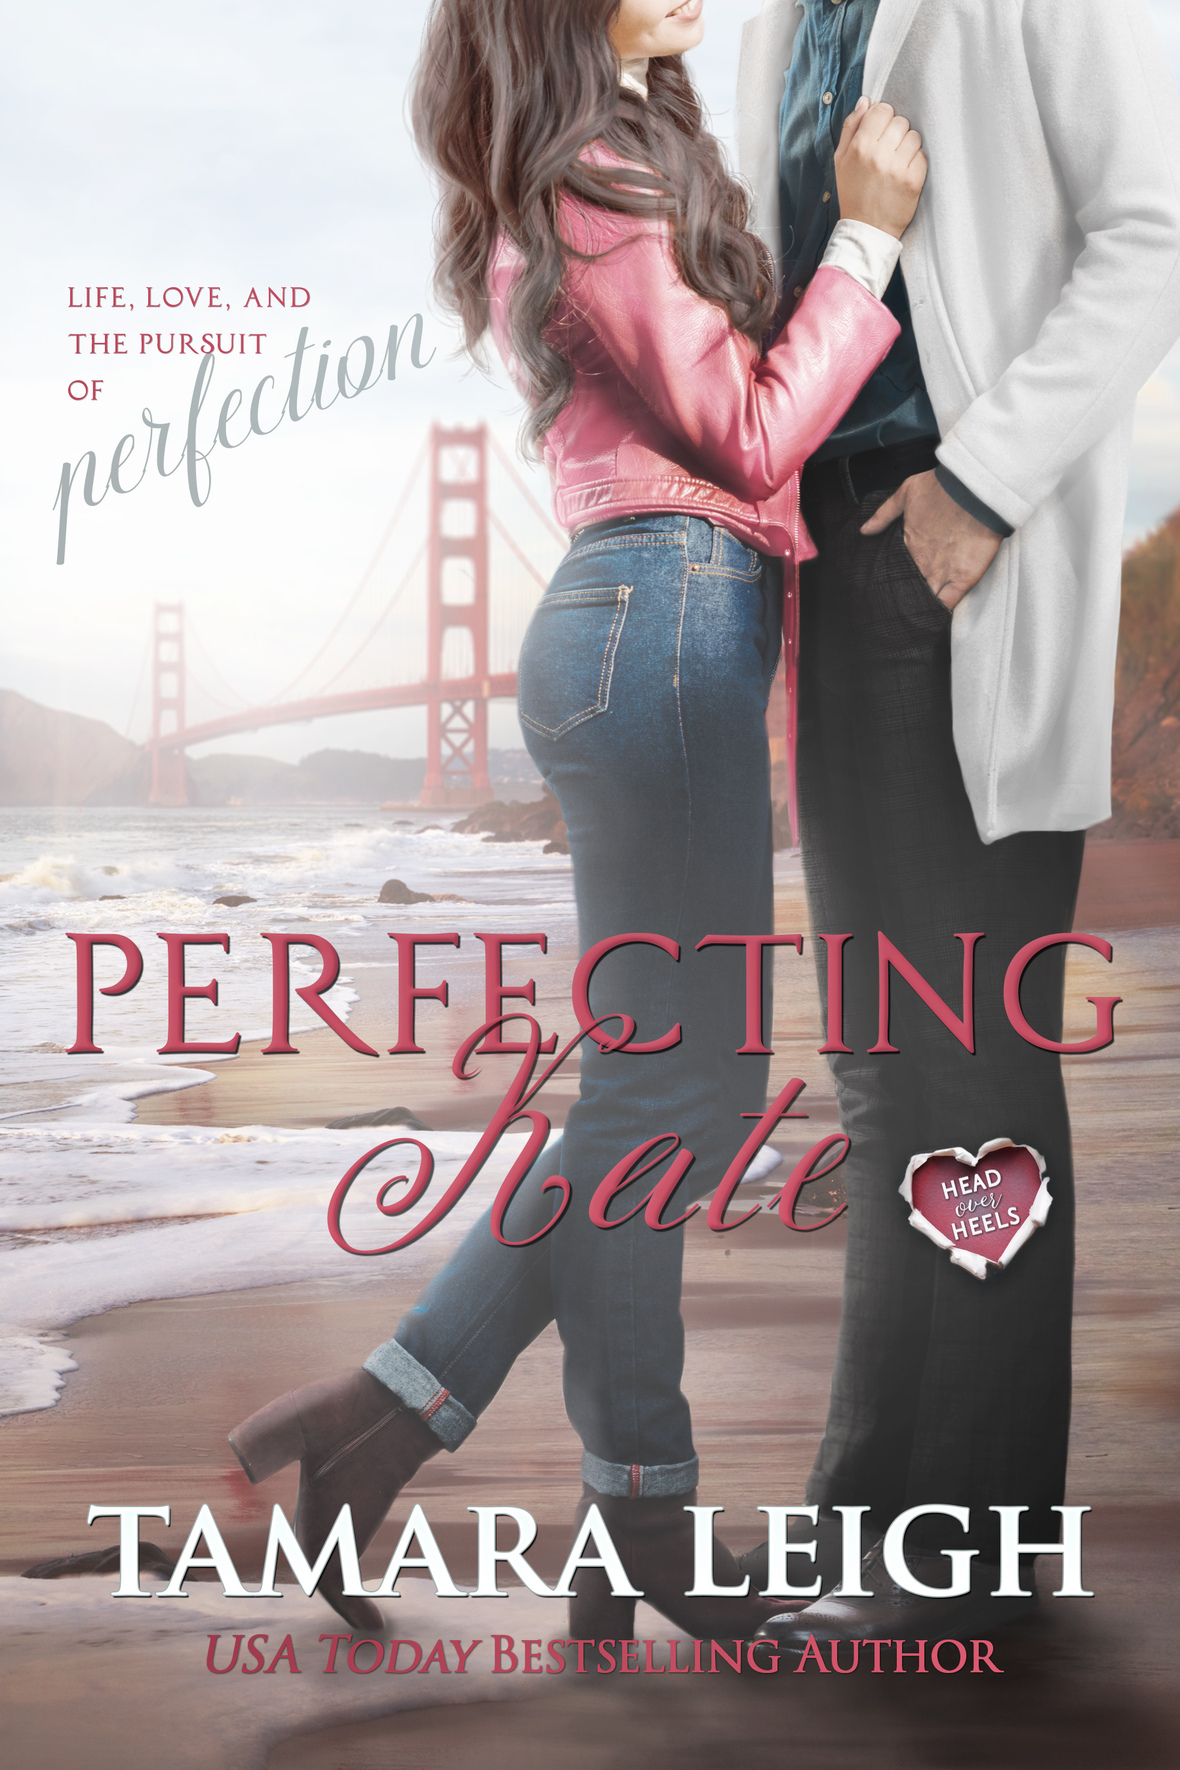 CLBD2018 Tamara Leigh HOH PerfectingKate EBOOK FINAL20190129